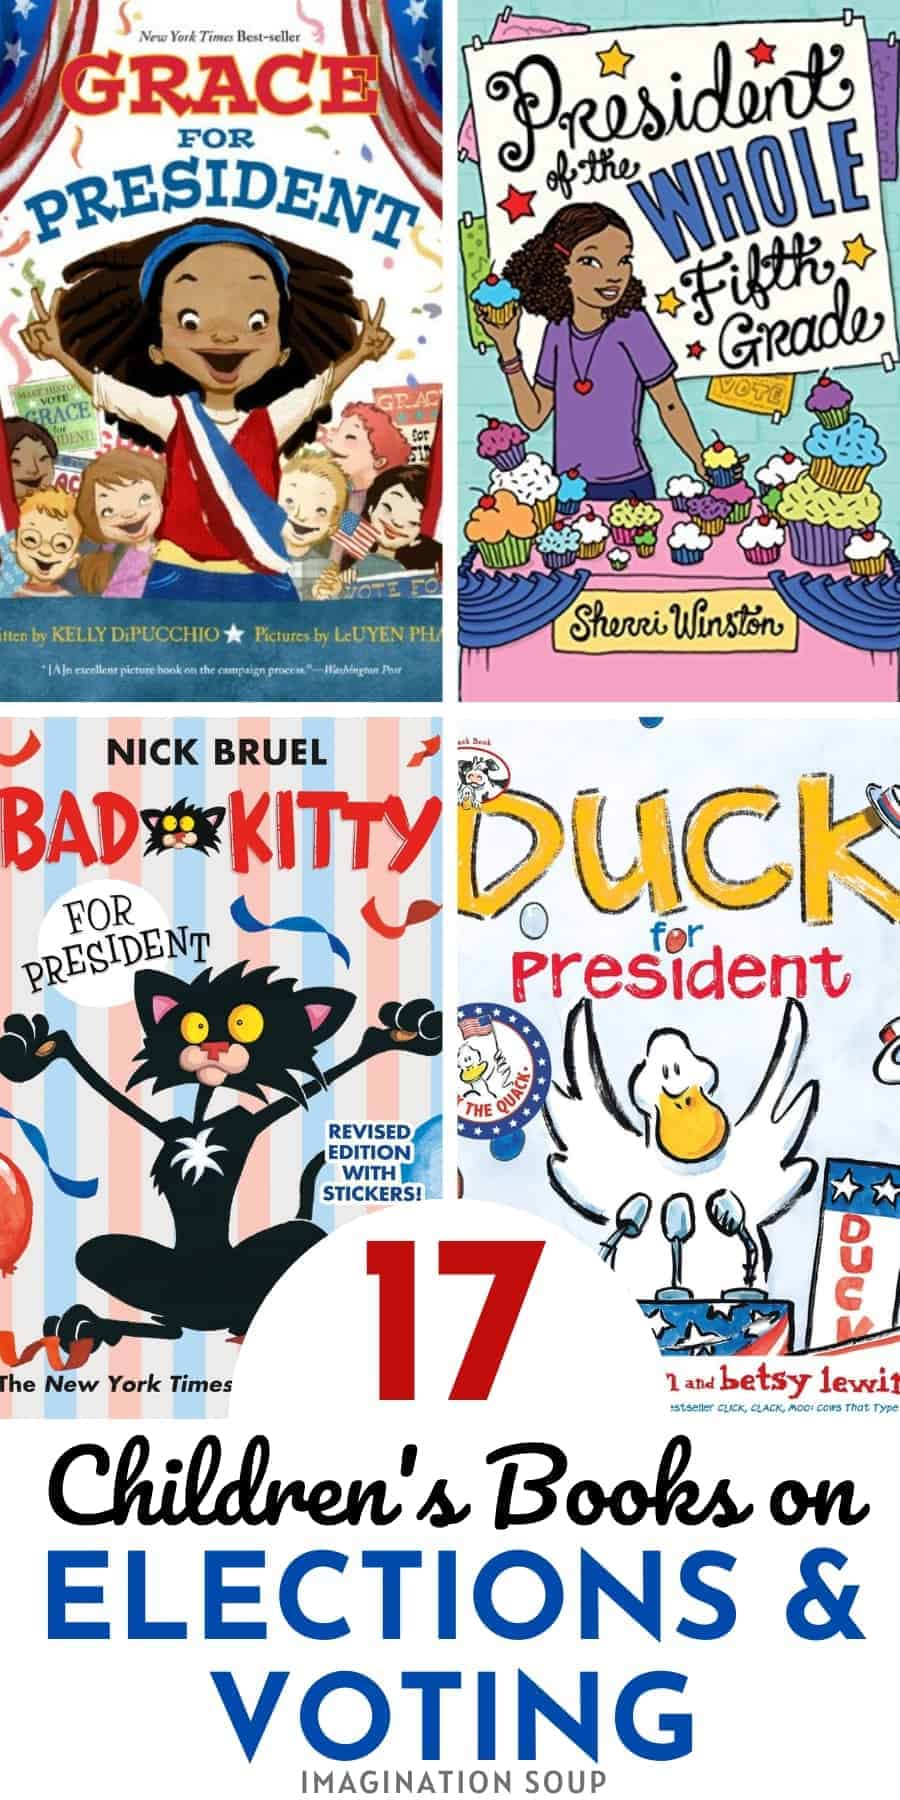 children's books about elections & voting